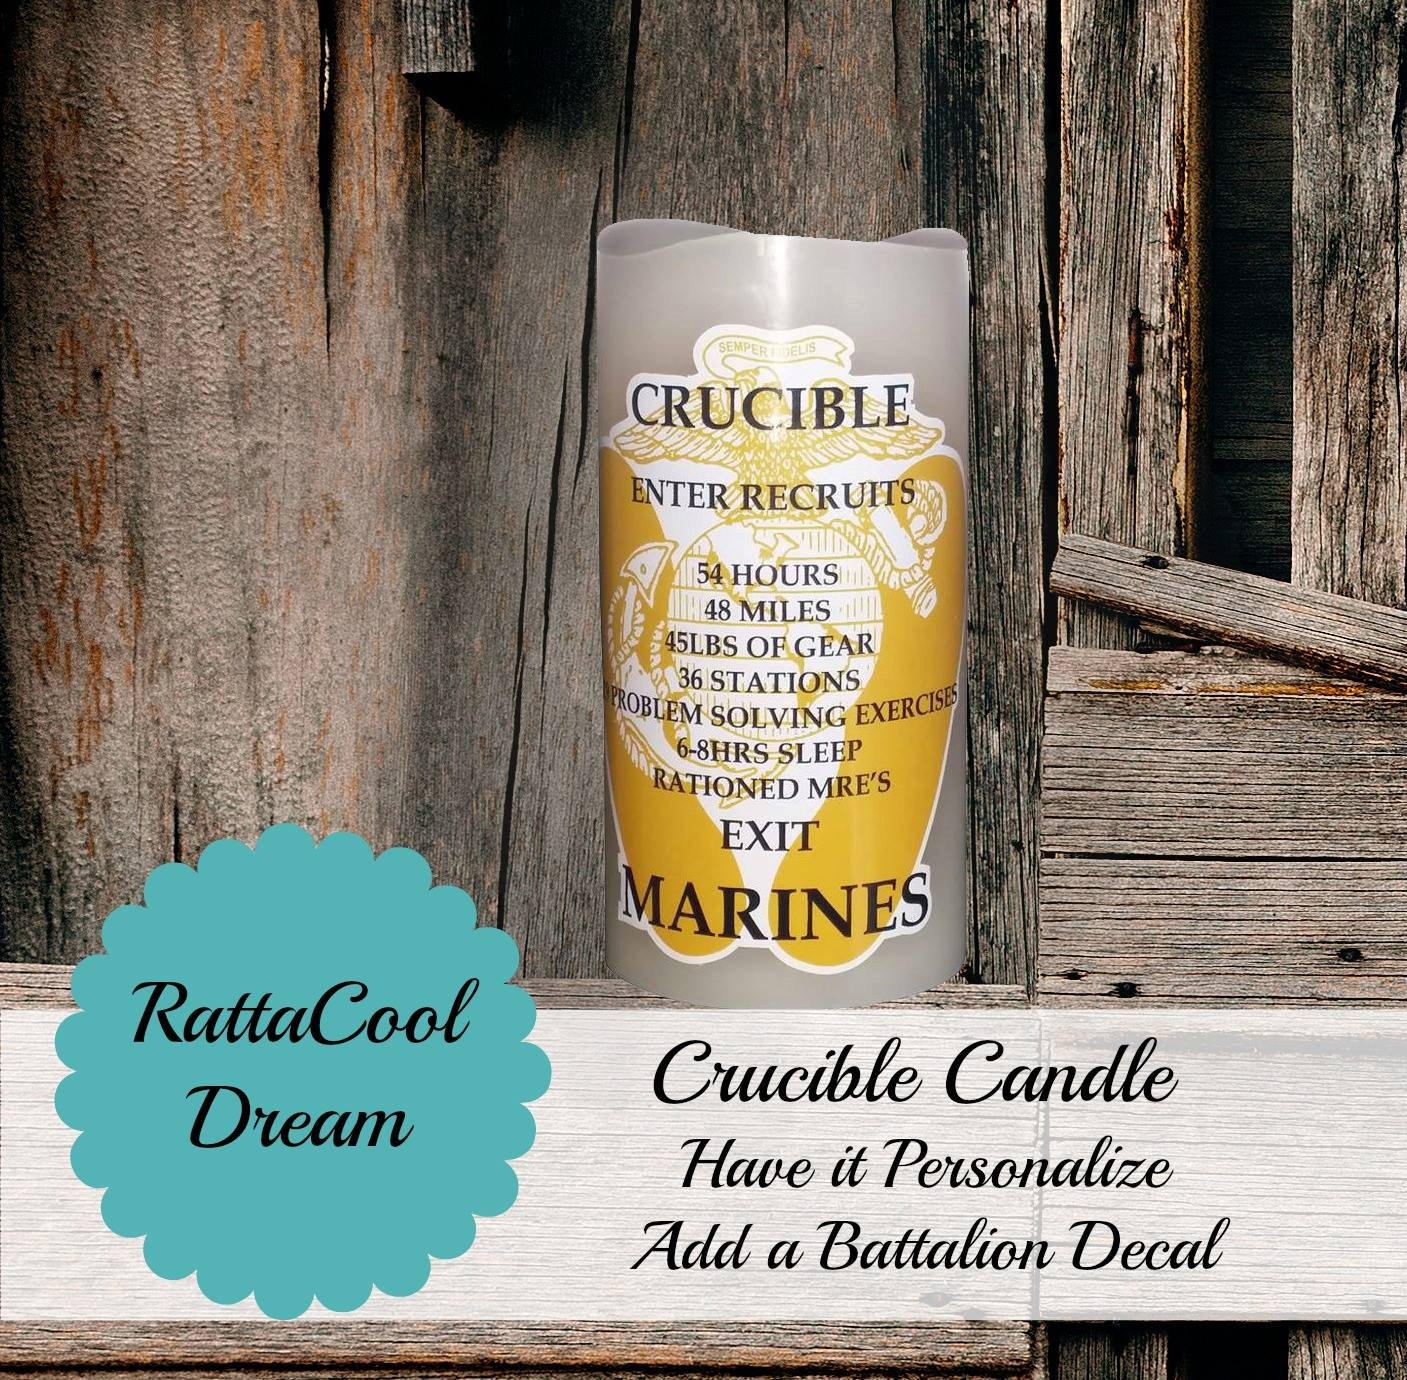 image about Crucible Candle Printable known as Crucible Candle Usmc Culture - Yr of Refreshing H2o